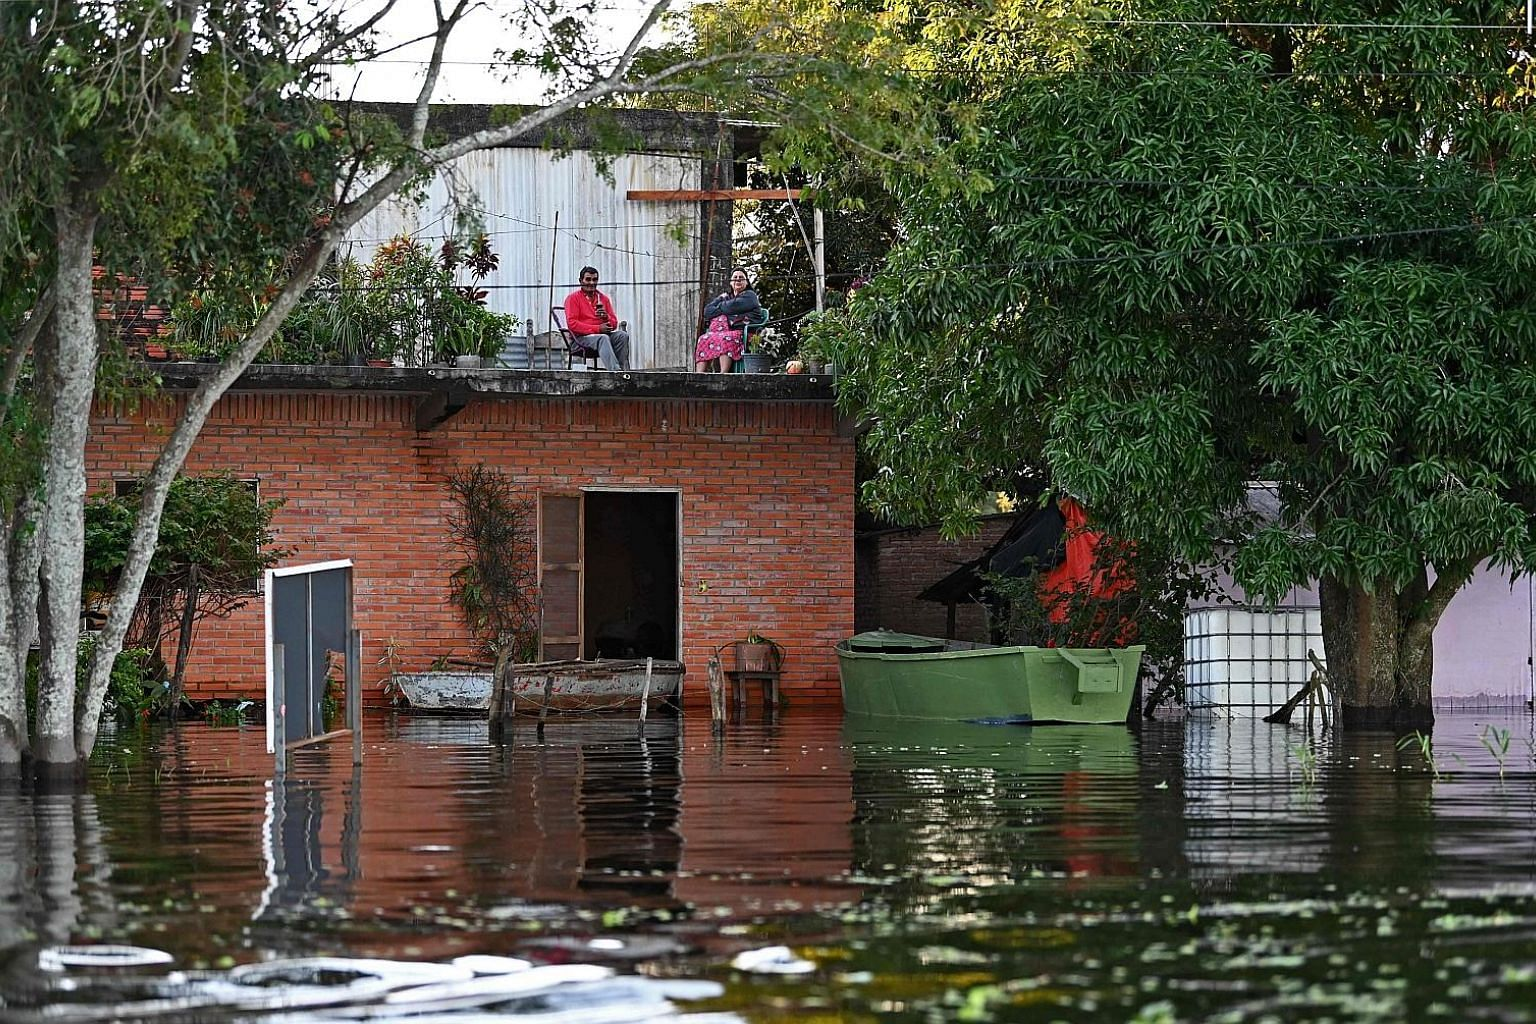 Some residents have opted to remain in their flooded homes in Puerto Falcon, near the capital Asuncion, despite water levels on the Paraguay River rising.